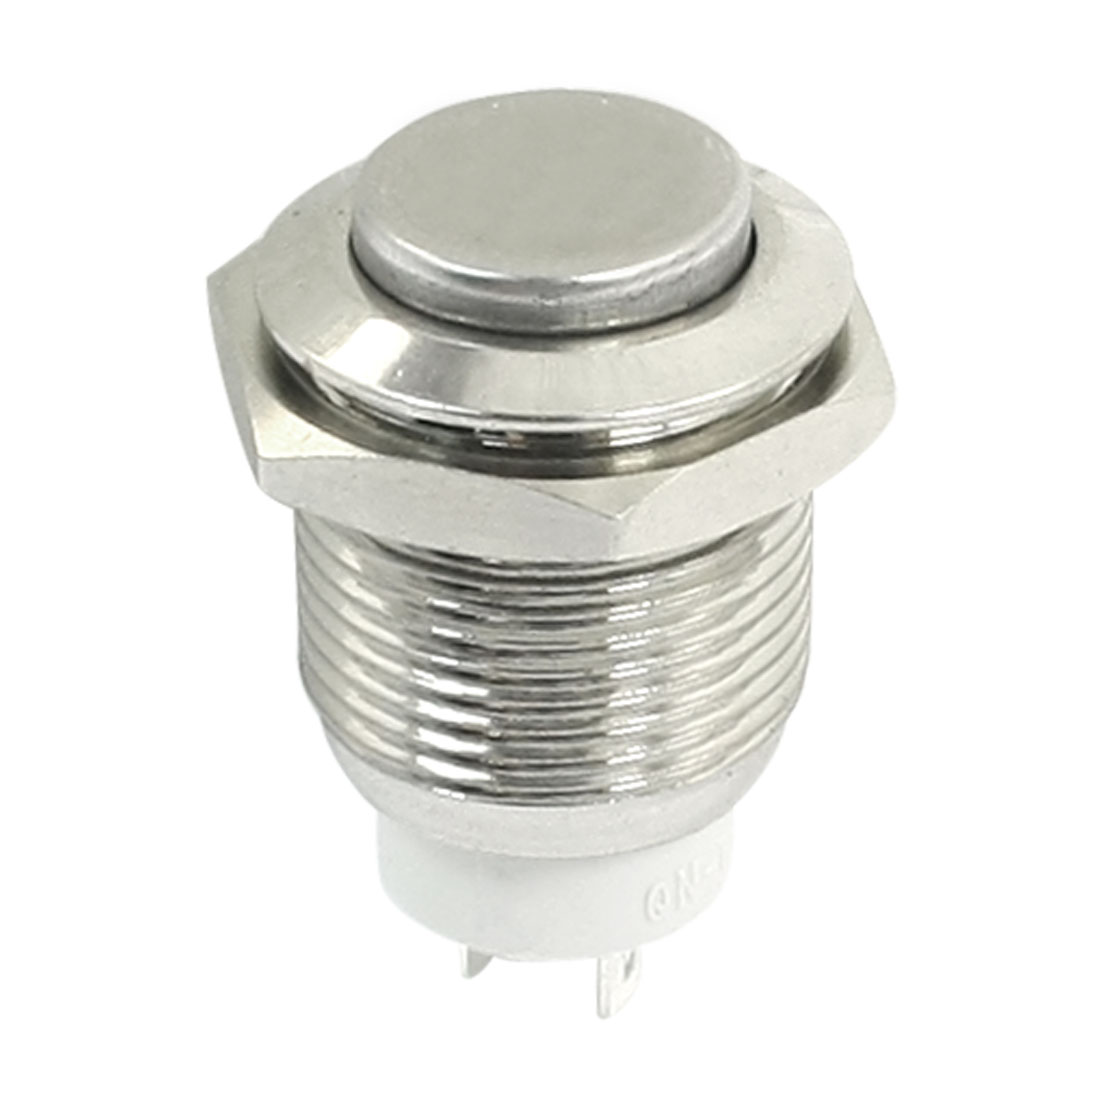 DC 3-250V SPST 2 Terminals High Flat Head 16mm Thread Panel Mount Locking Metal Push Button Switch